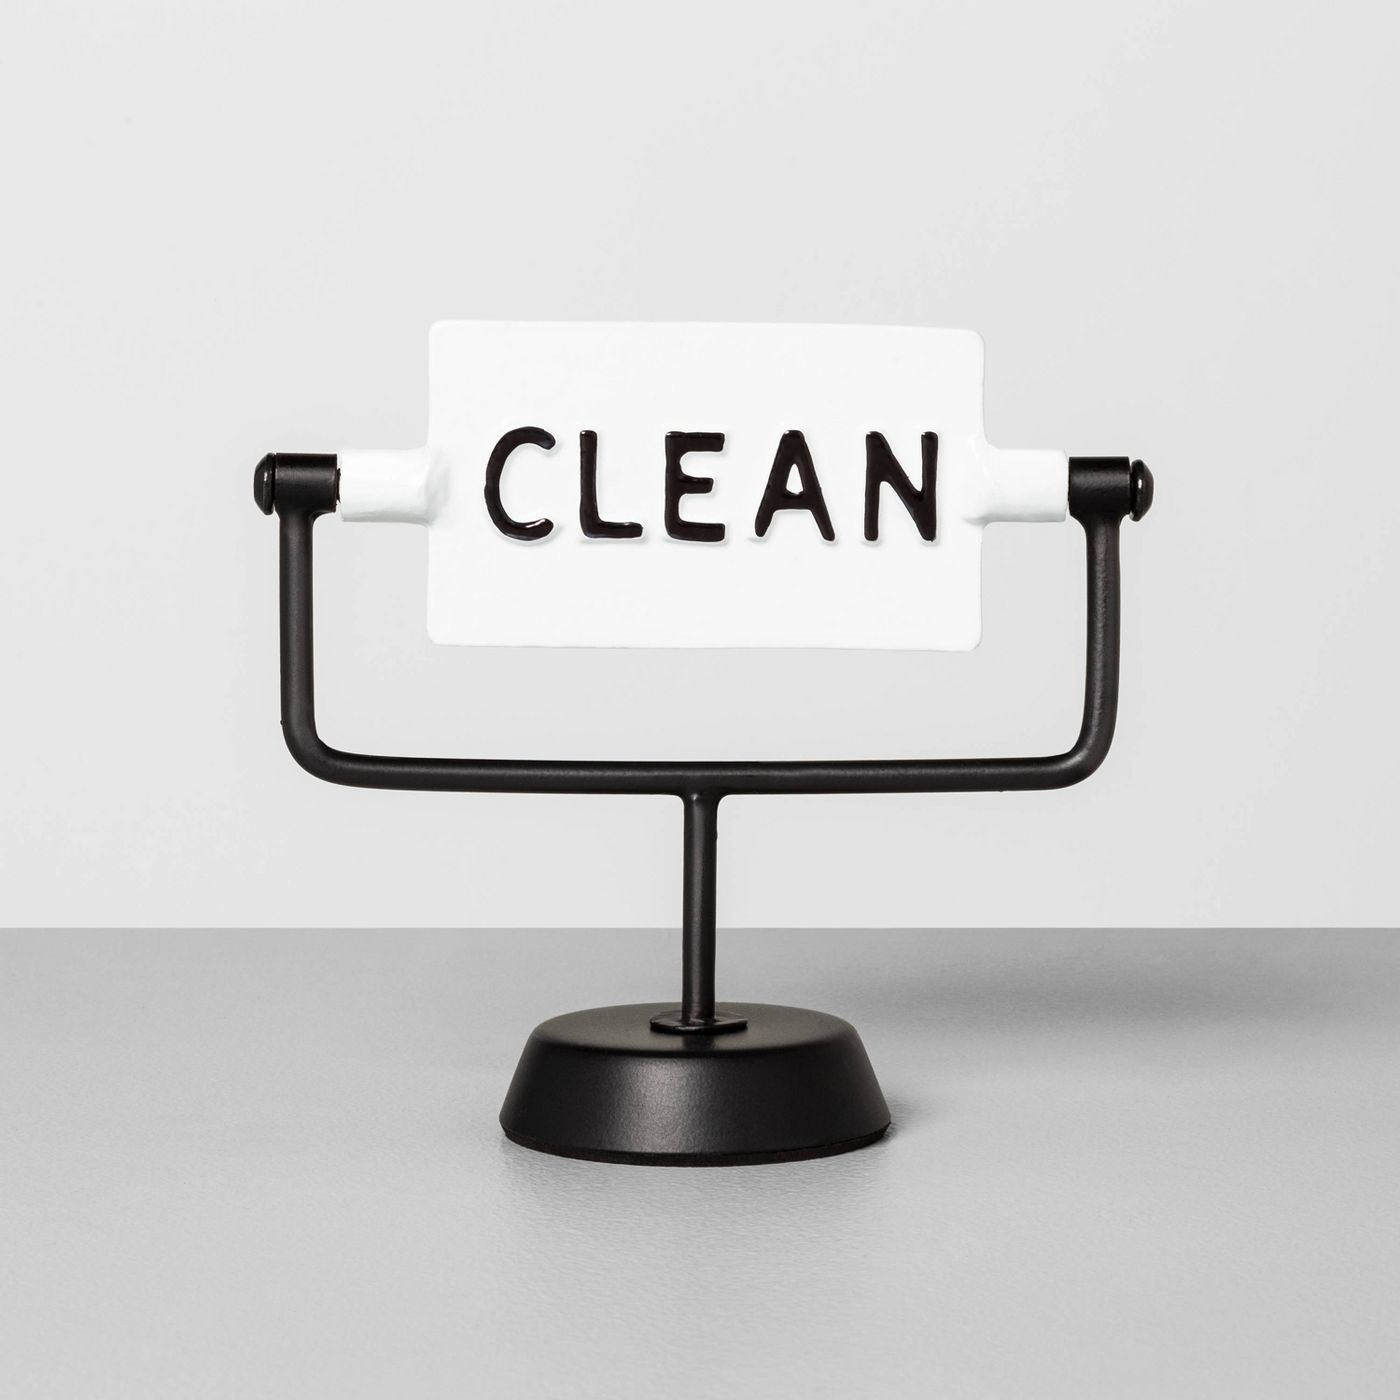 A black and white, clean/dirty sign